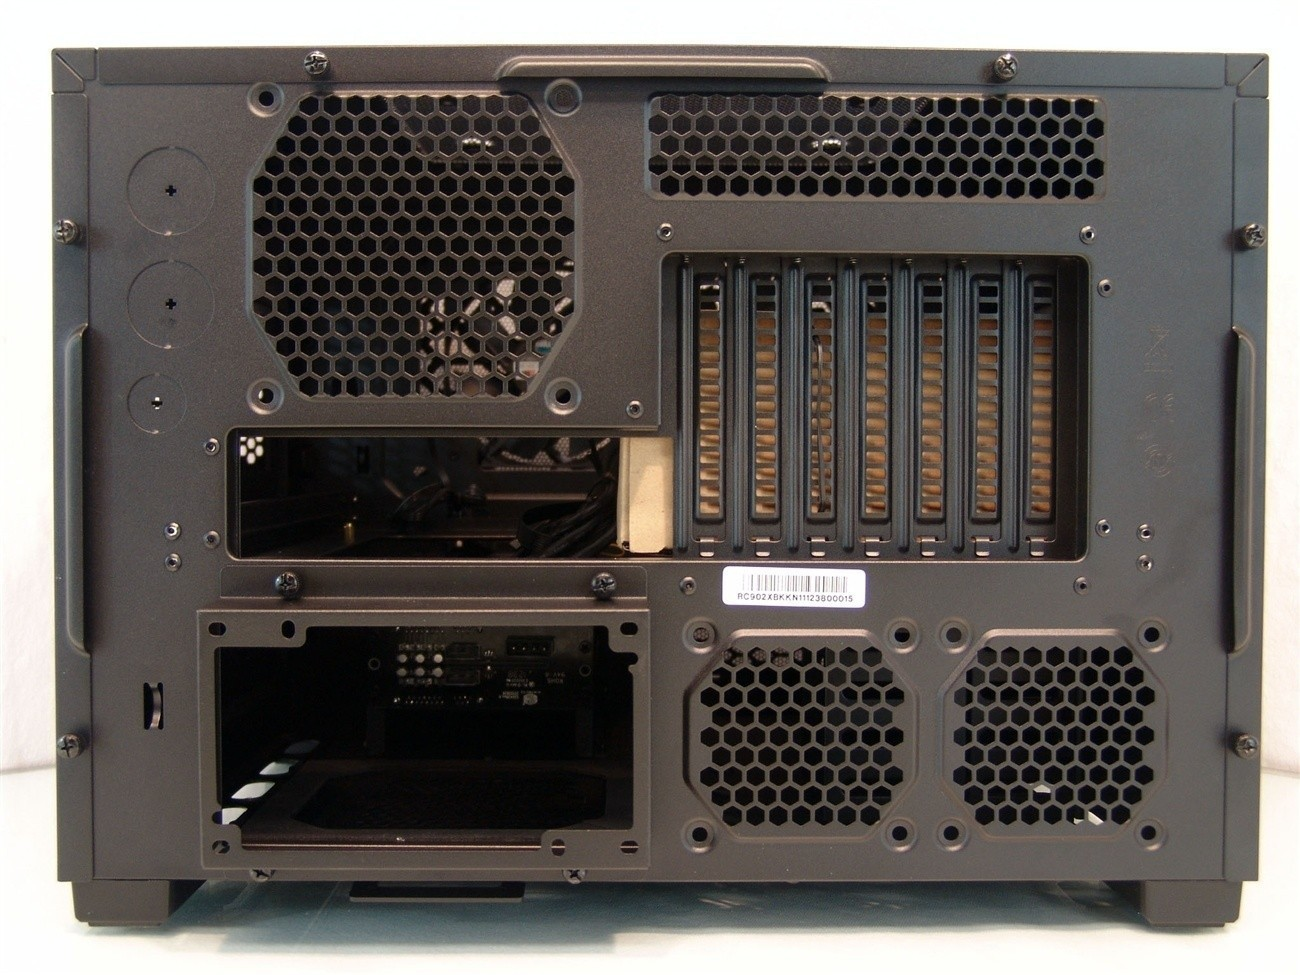 5036_12_cooler_master_haf_xb_lan_box_open_air_chassis_review_full.jpg